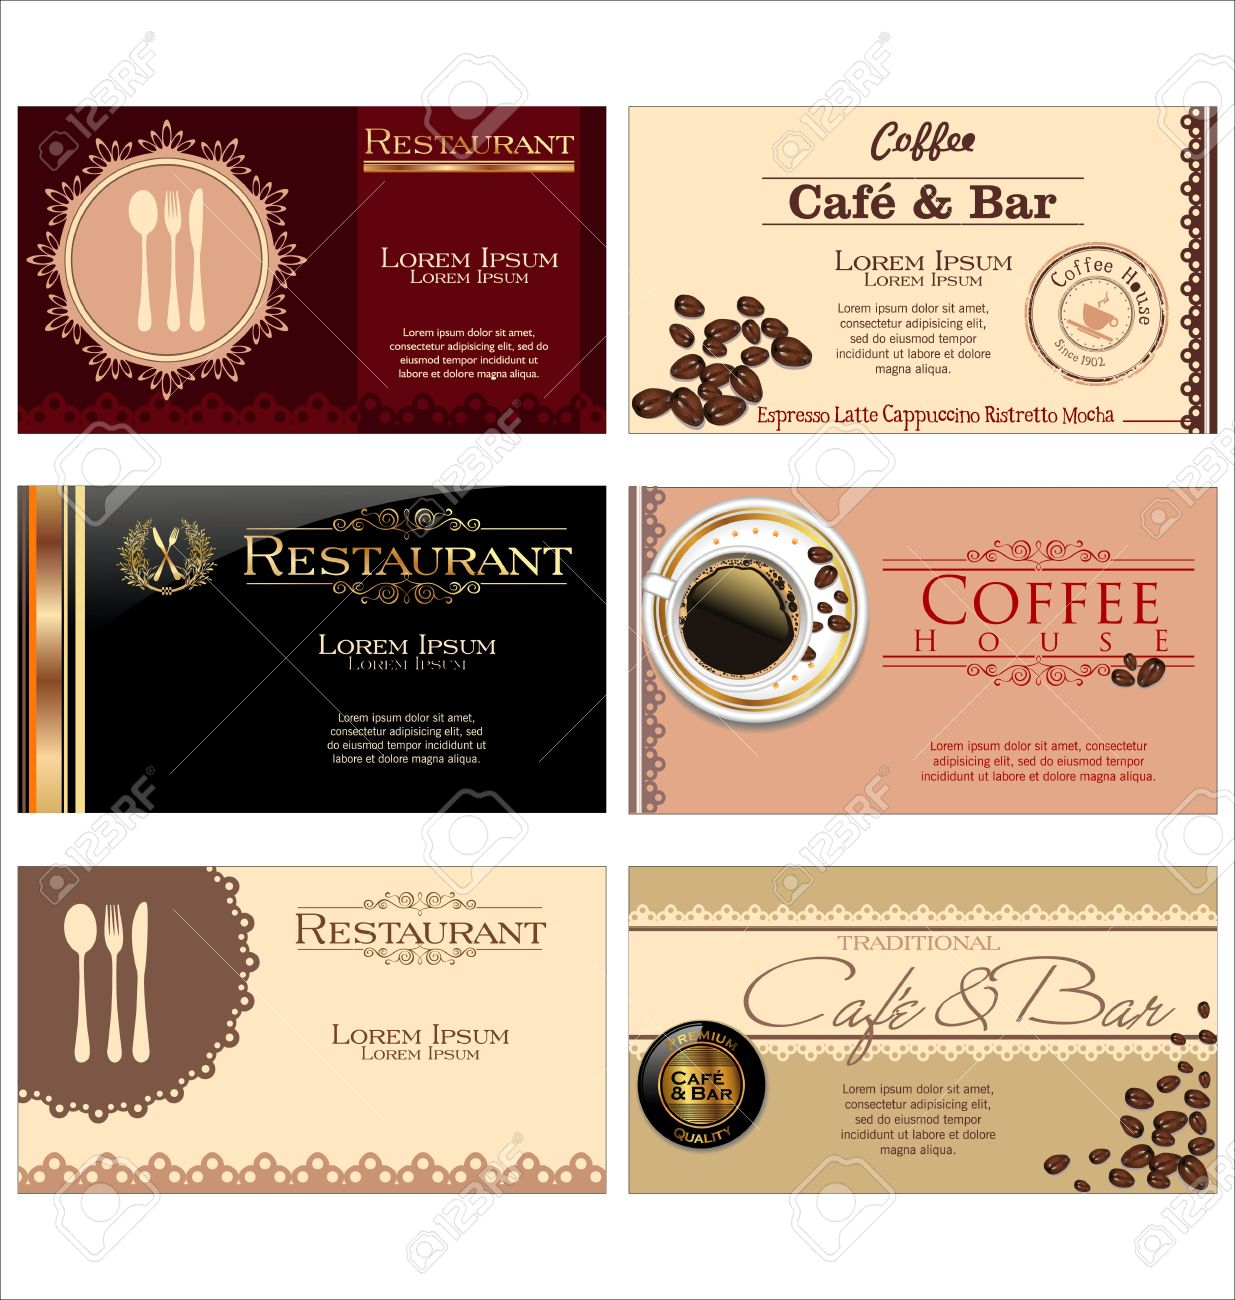 Business cards for cafe and restaurant royalty free cliparts business cards for cafe and restaurant stock vector 19156233 reheart Image collections